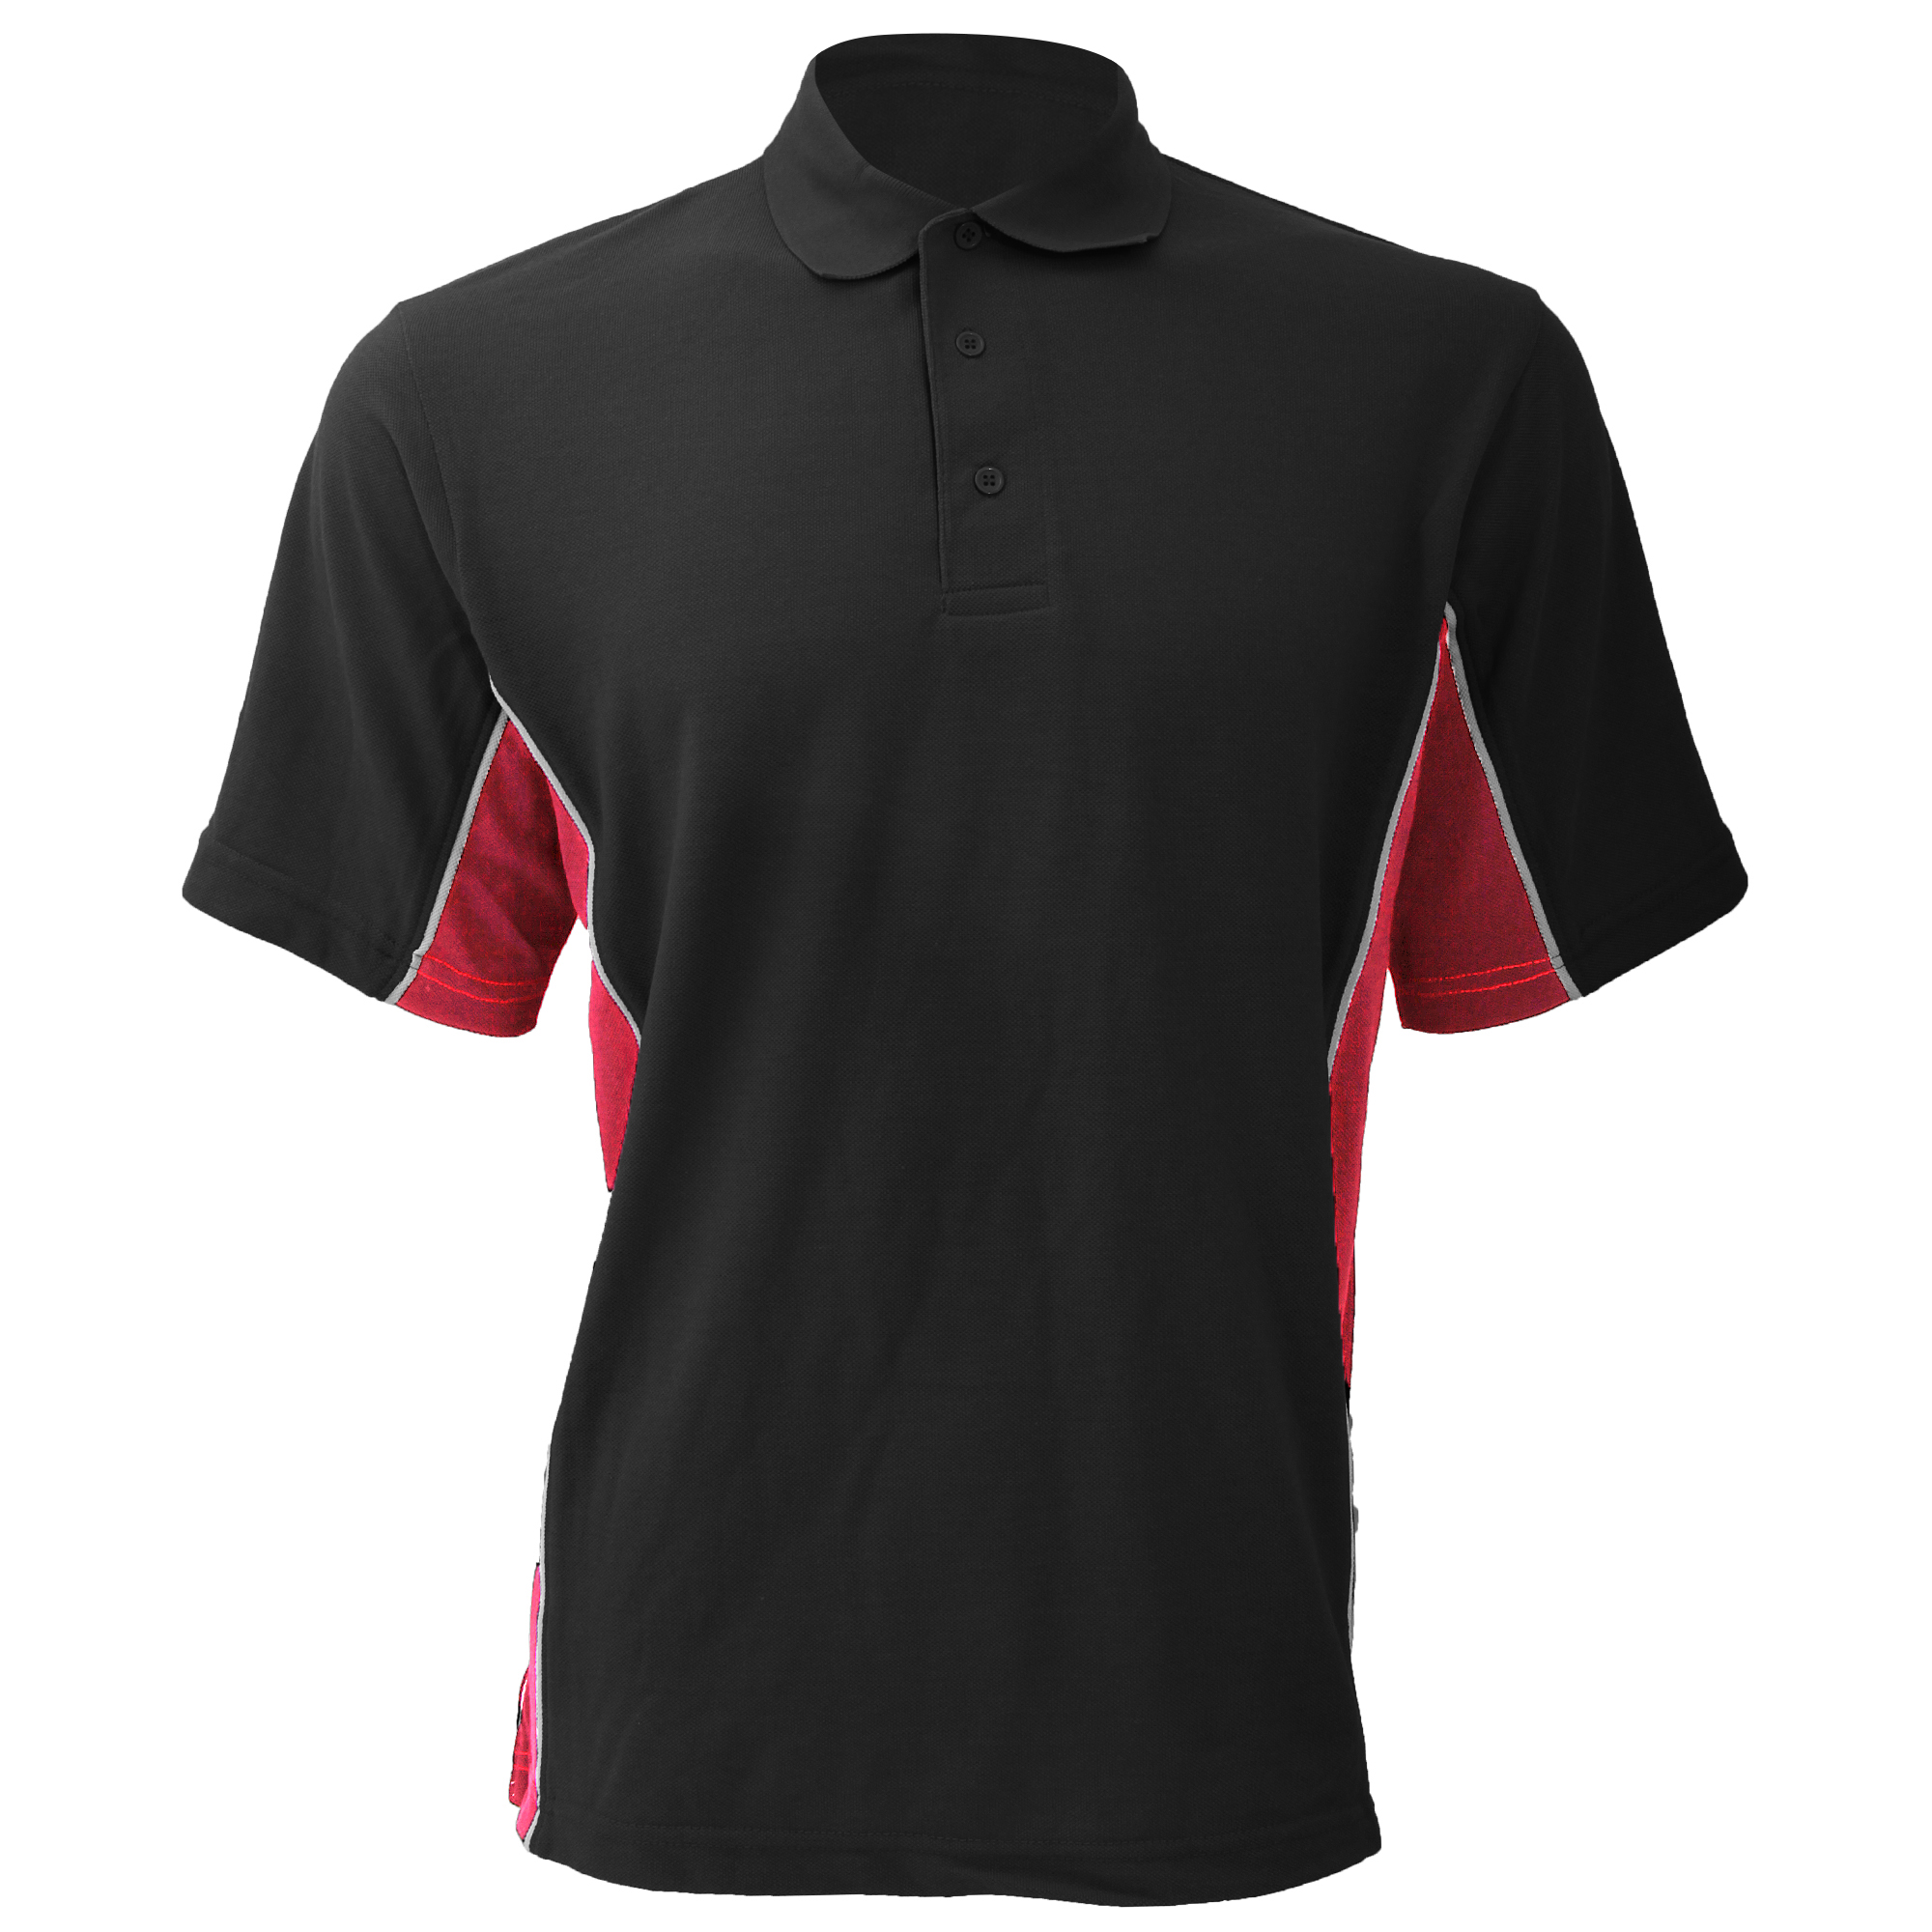 Gamegear® Mens Track Pique Short Sleeve Polo Shirt Top (S) (Black/Red/White)